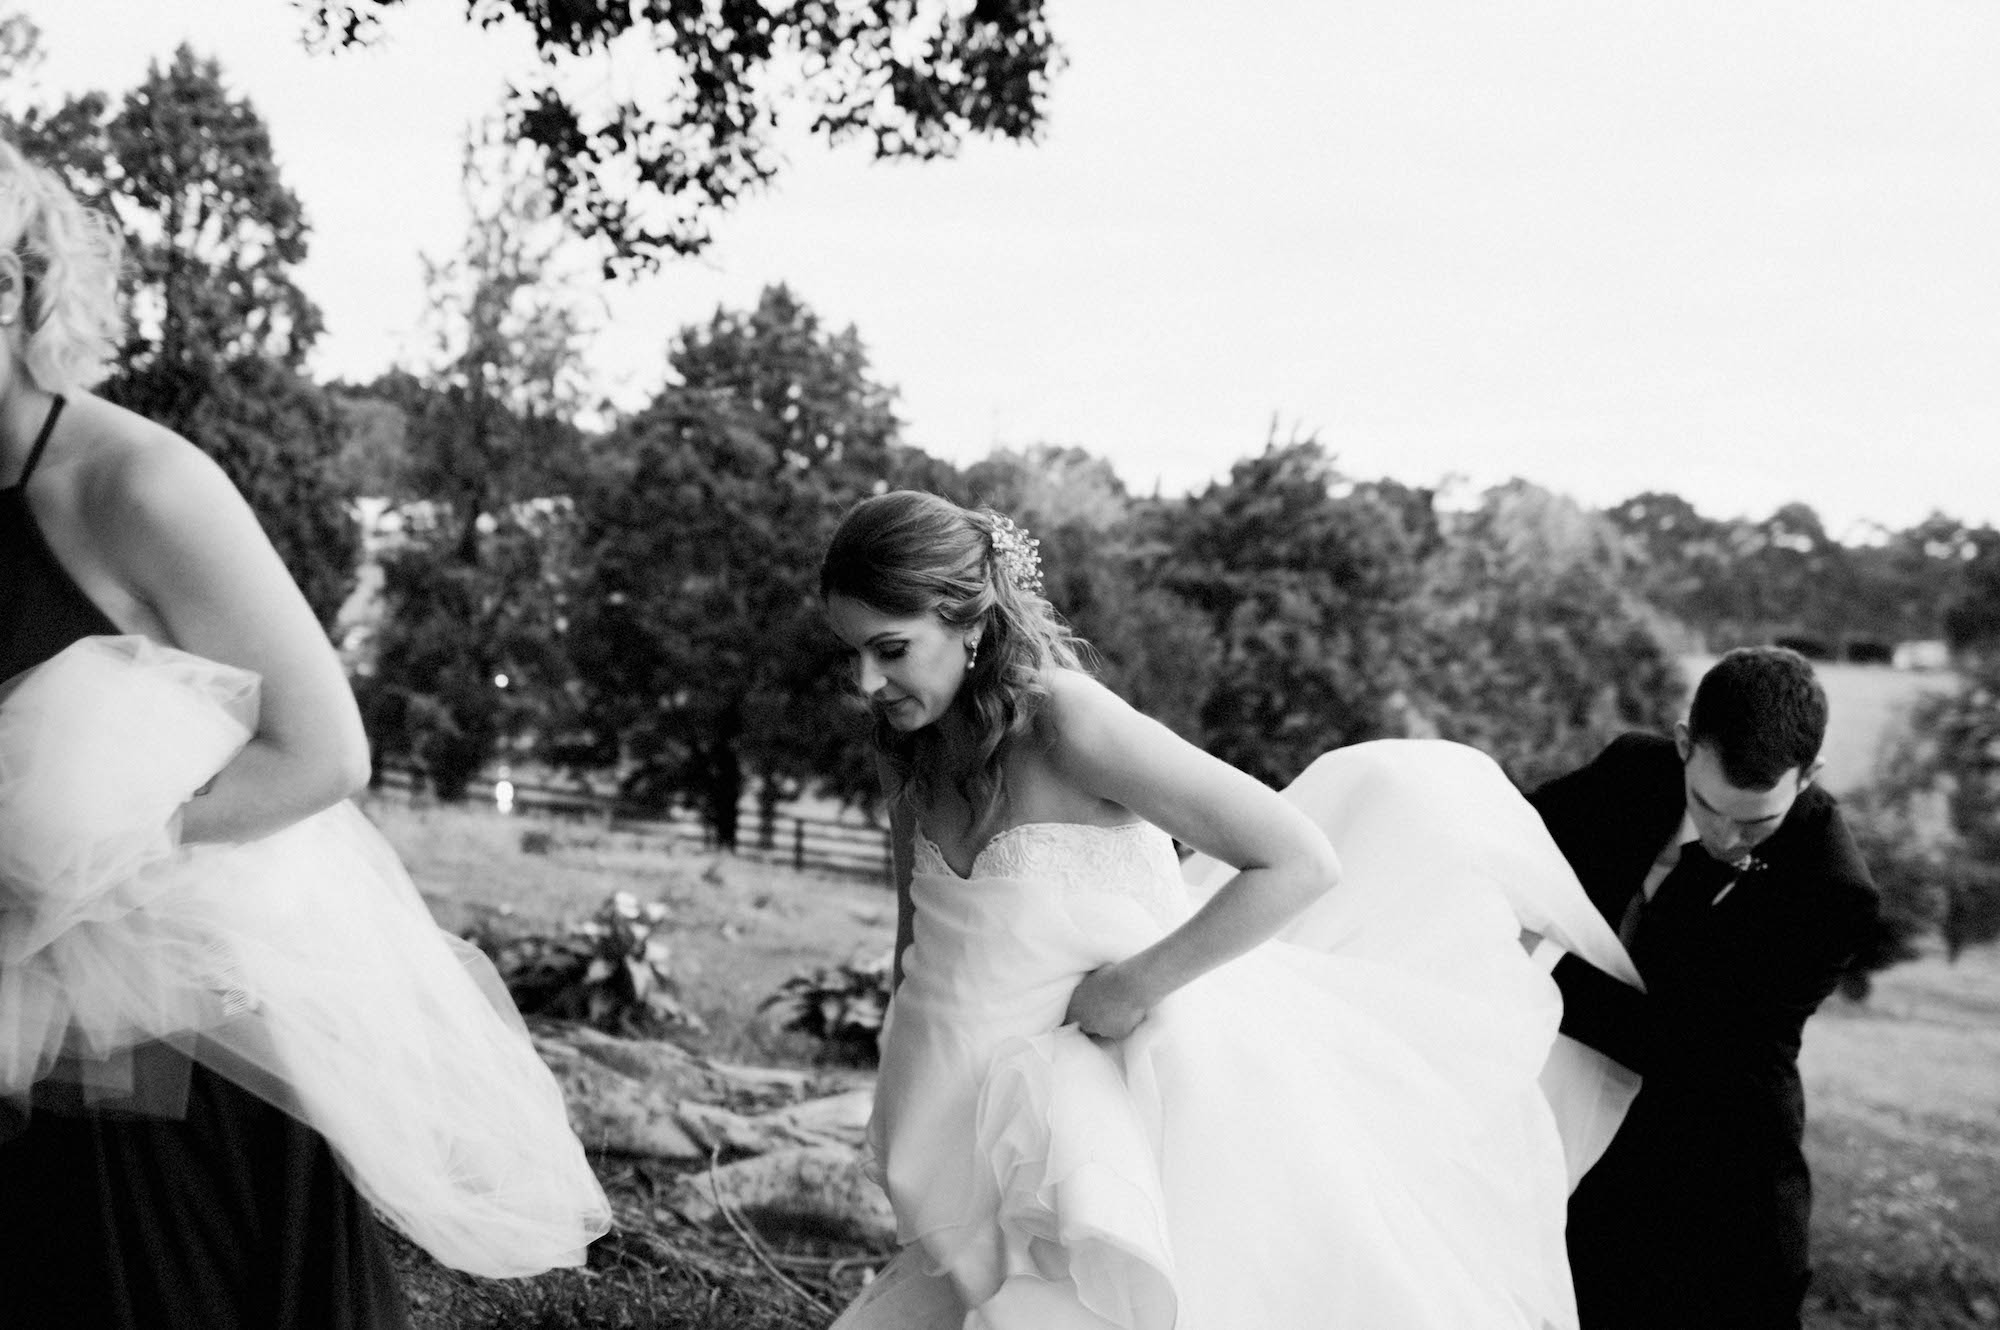 Candid black & white wedding photography of the bride & groom walking together in Australia.